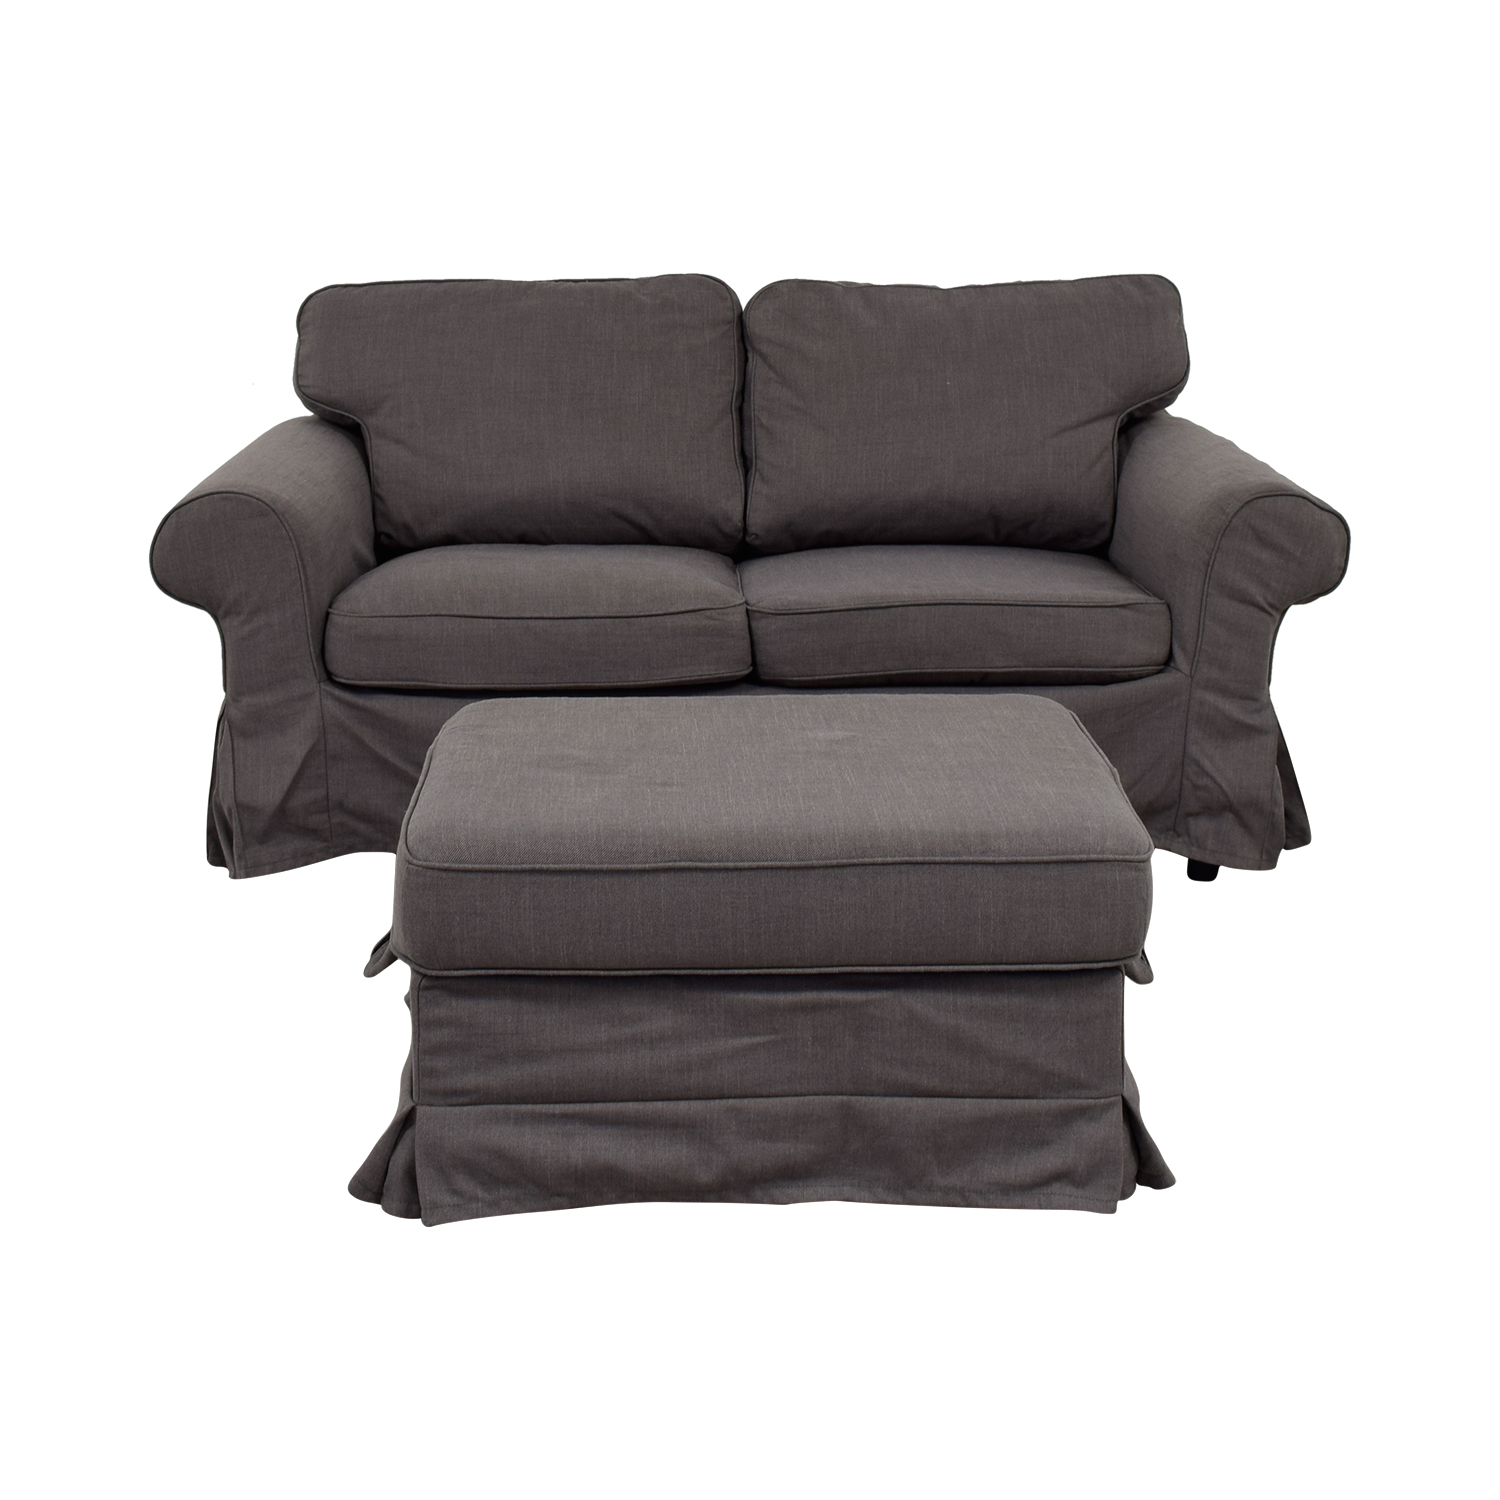 Loveseat Ikea 90 Off Ikea Ikea Grey Loveseat And Ottoman Sofas